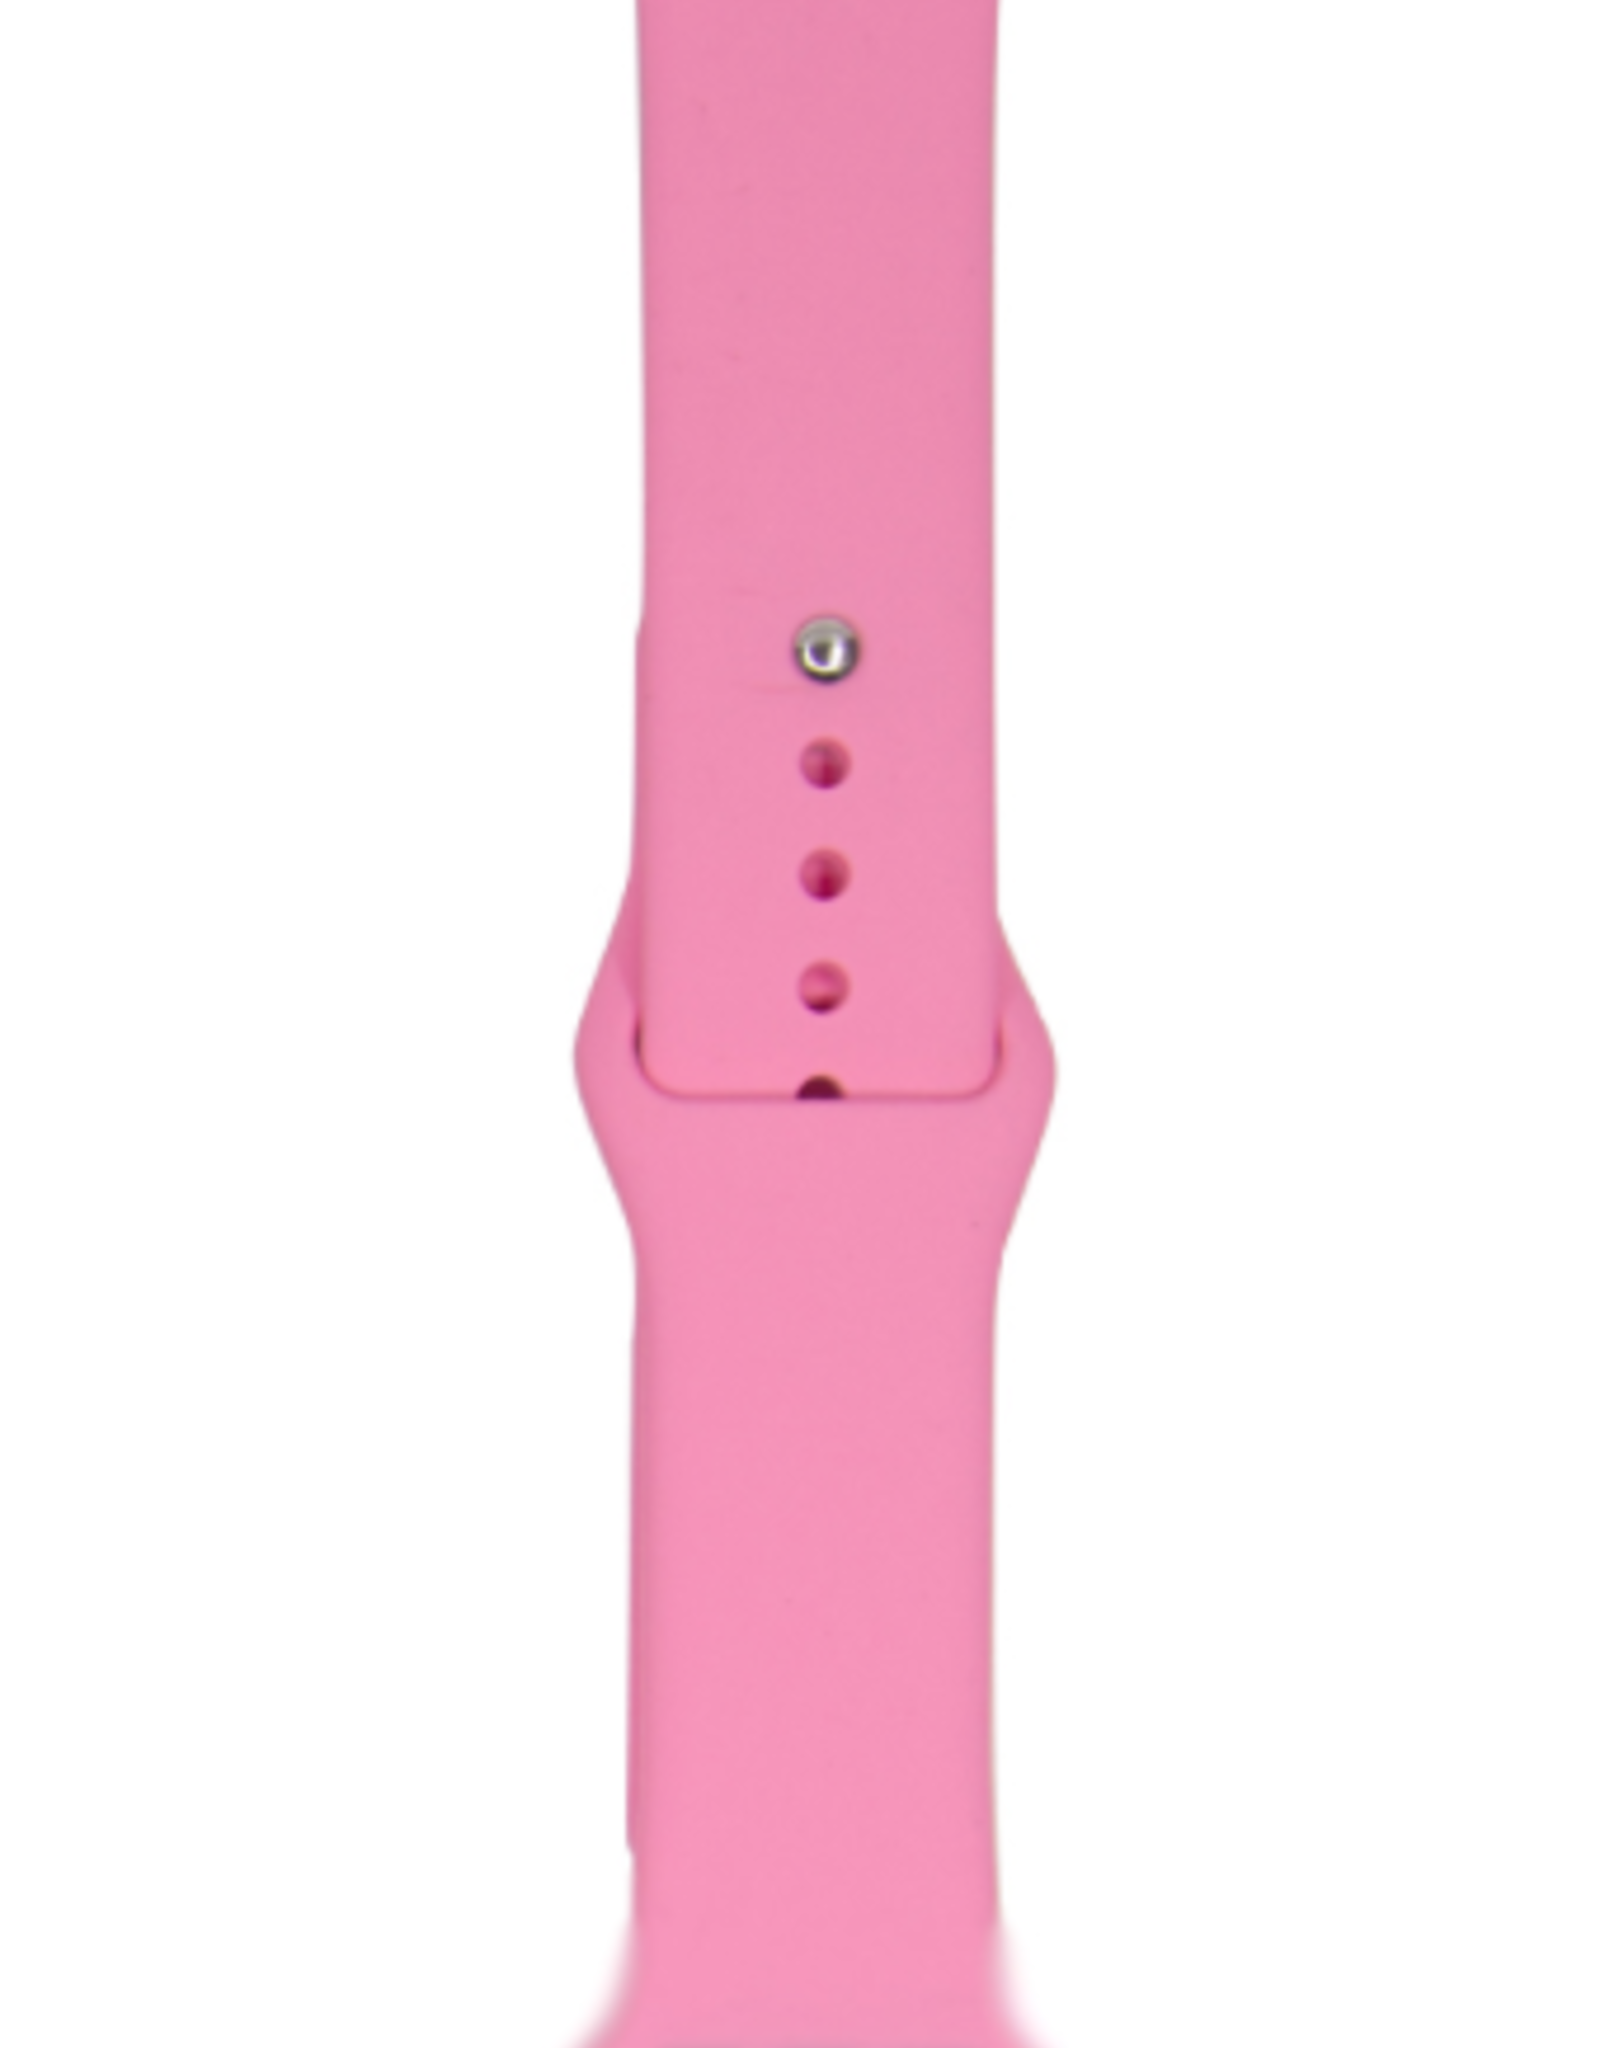 Silicone band for Apple Watch Color# 6 Light Pink 38/40mm M/L